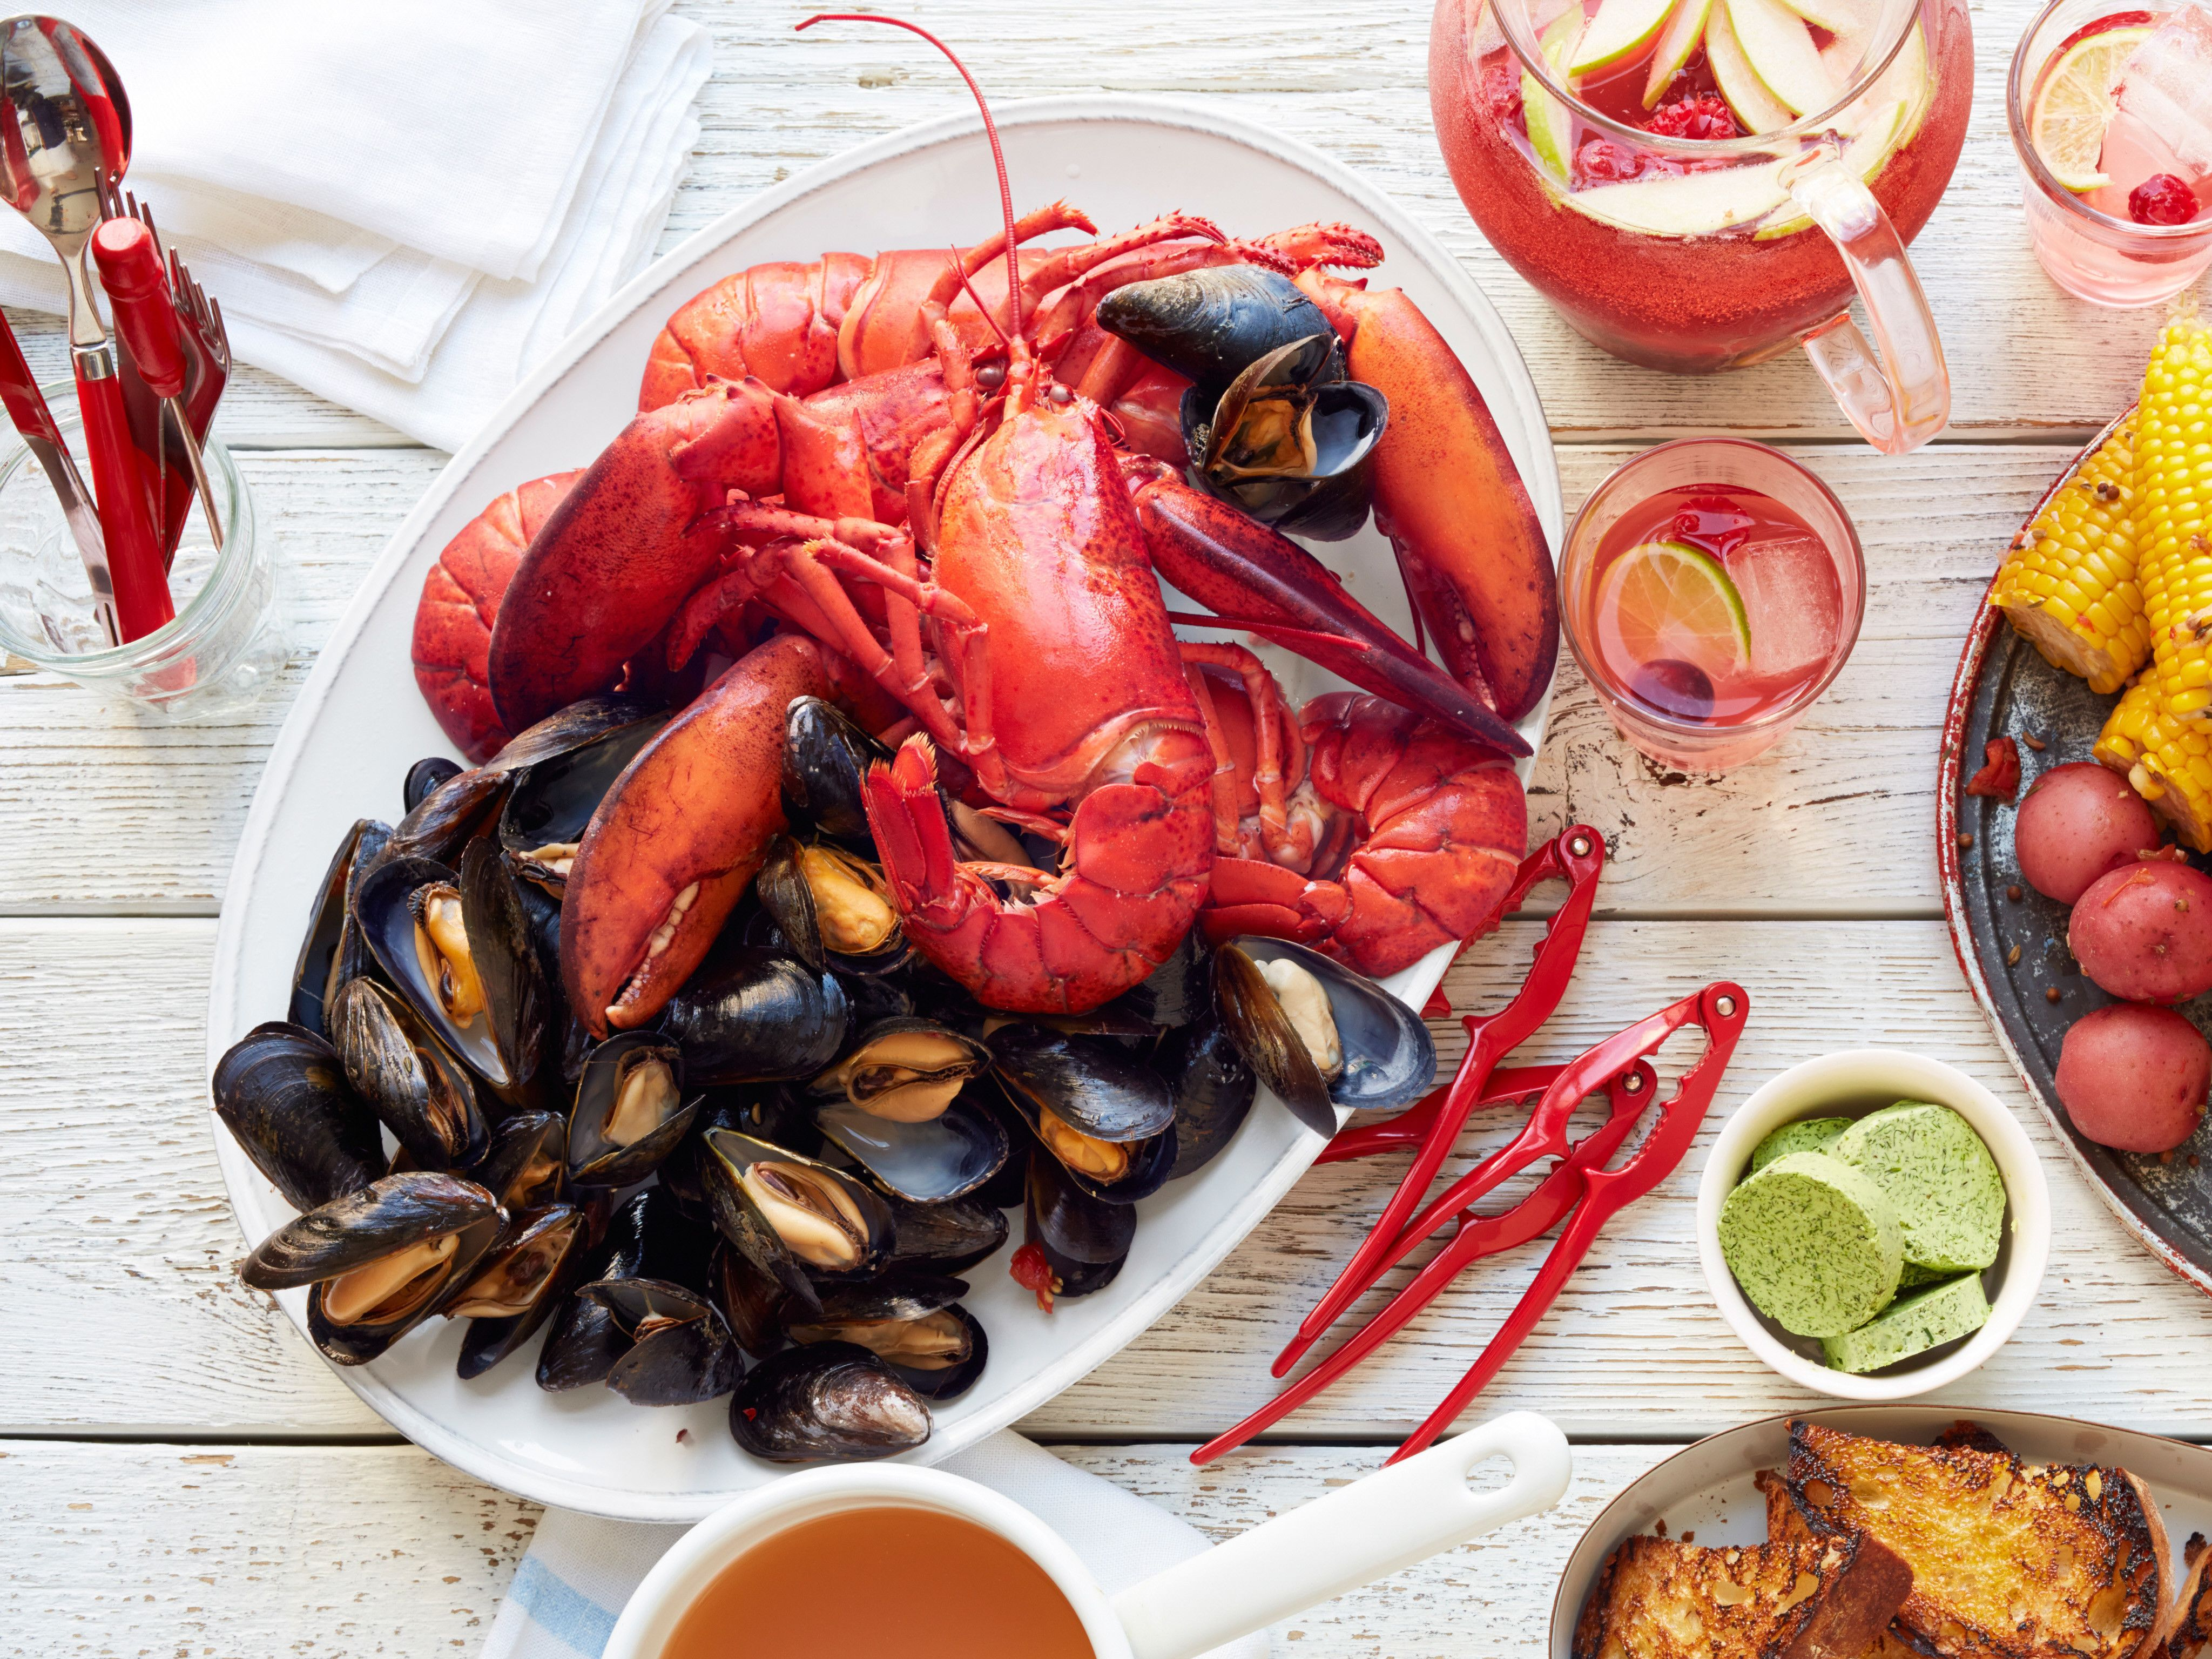 Seafood Boil With Lobsters And Mussels Recipe Mussels Recipe Seafood Boil Food Network Recipes